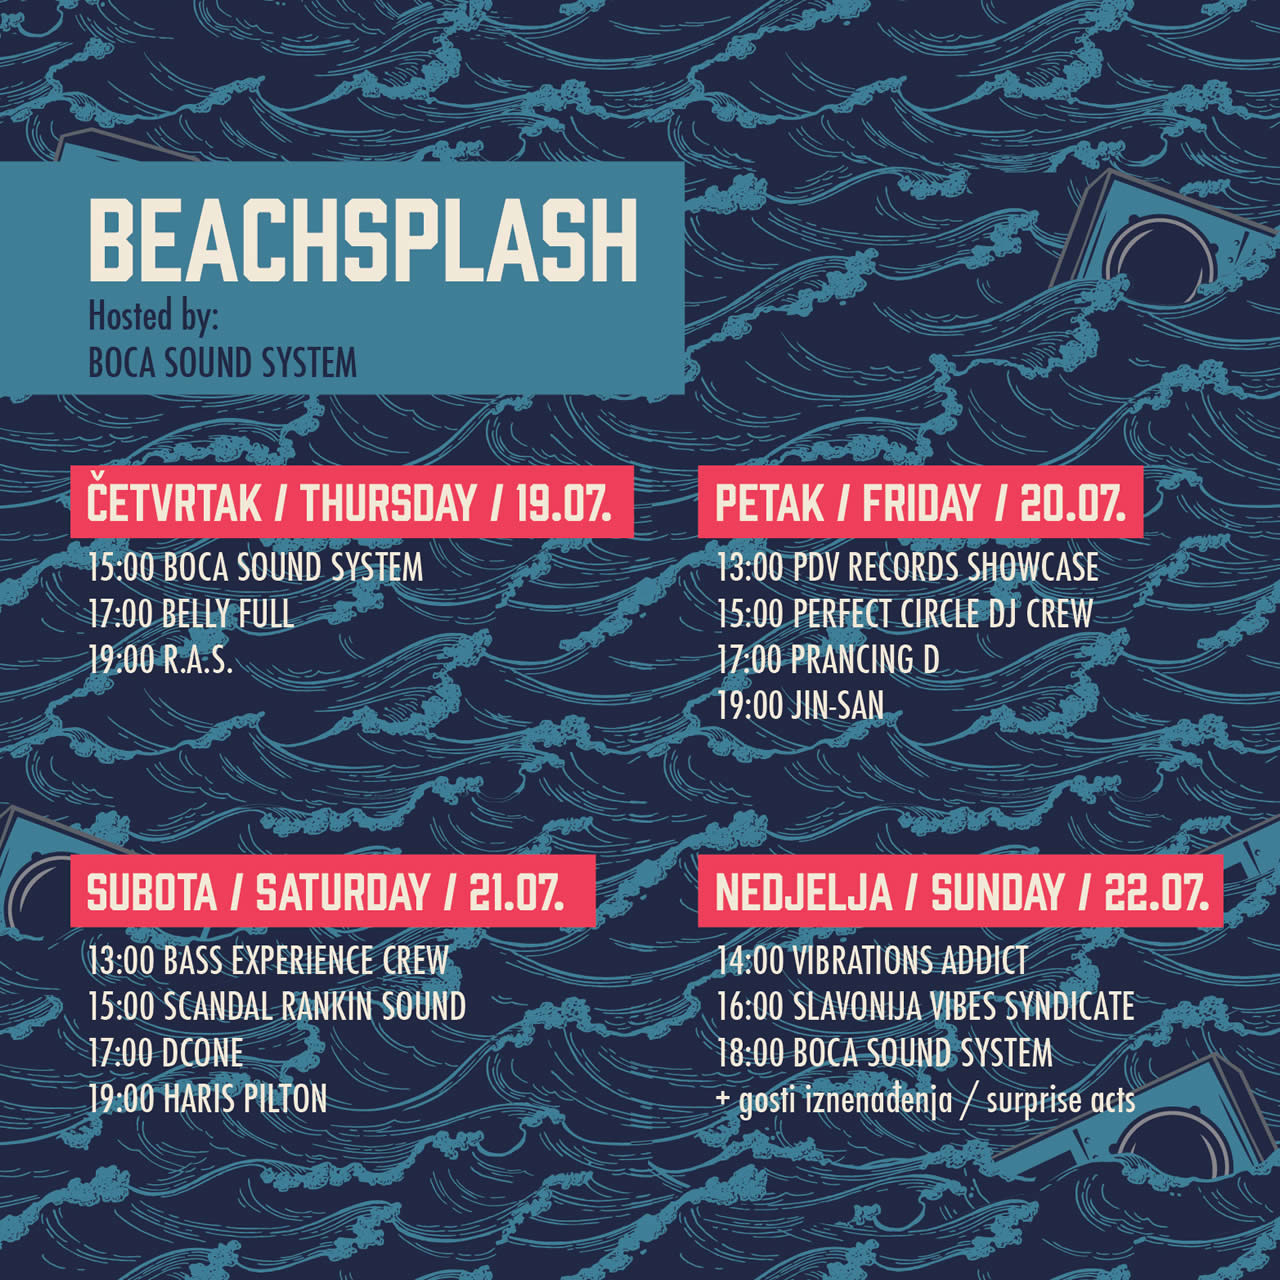 BeachSplash 2018 Schedule